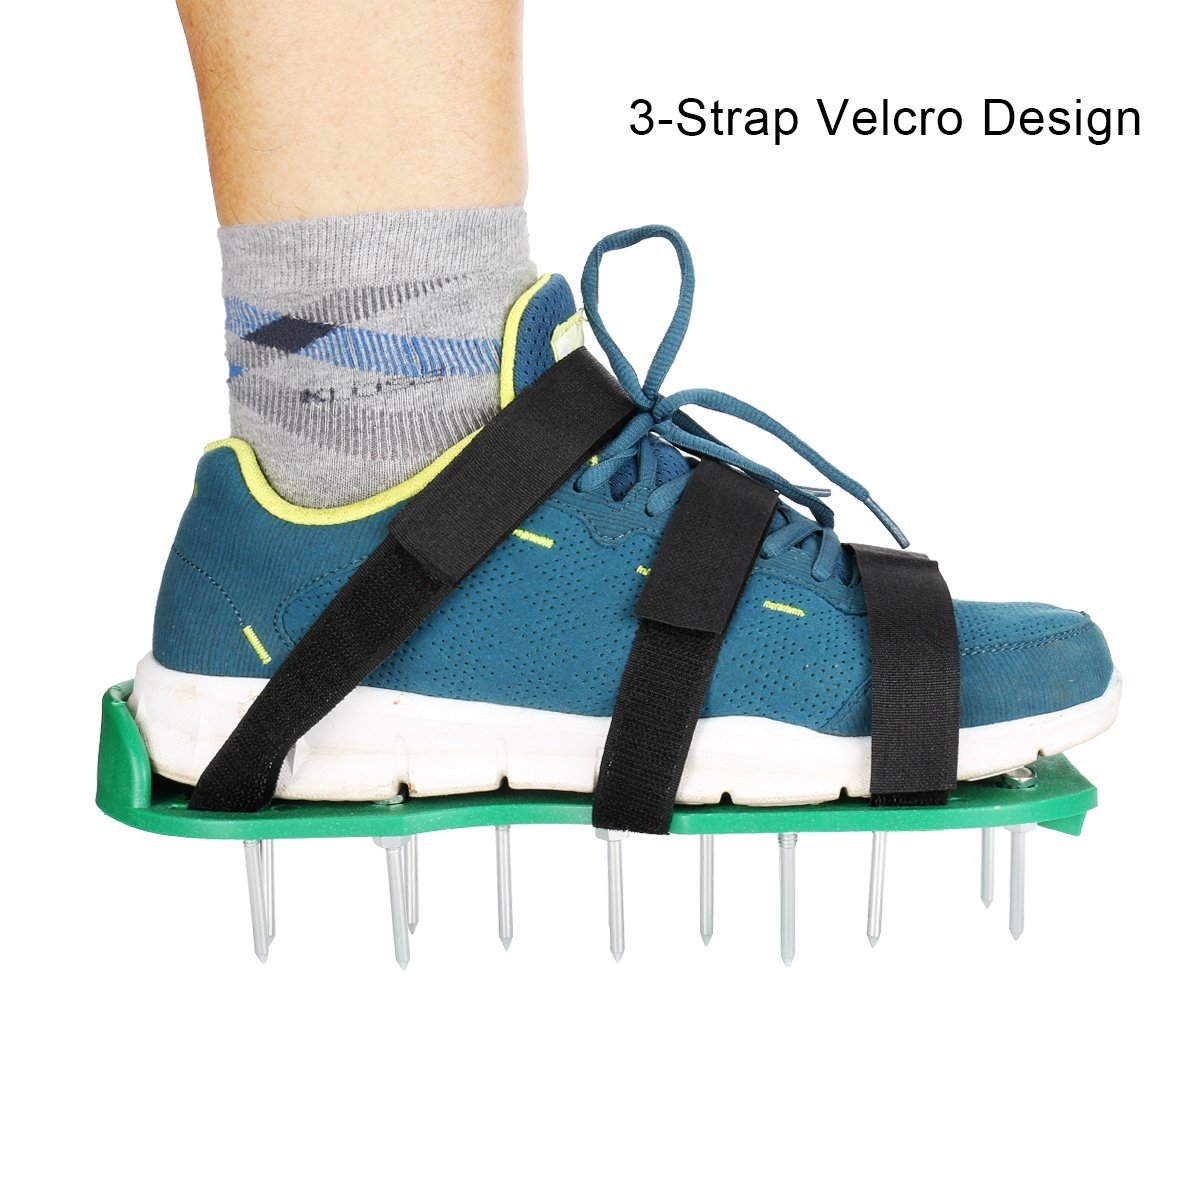 Lawn Aerator Shoes - GresaPop Spikes Lawn Aerator Sandals With 3 Velcro  Straps,Best Lawn